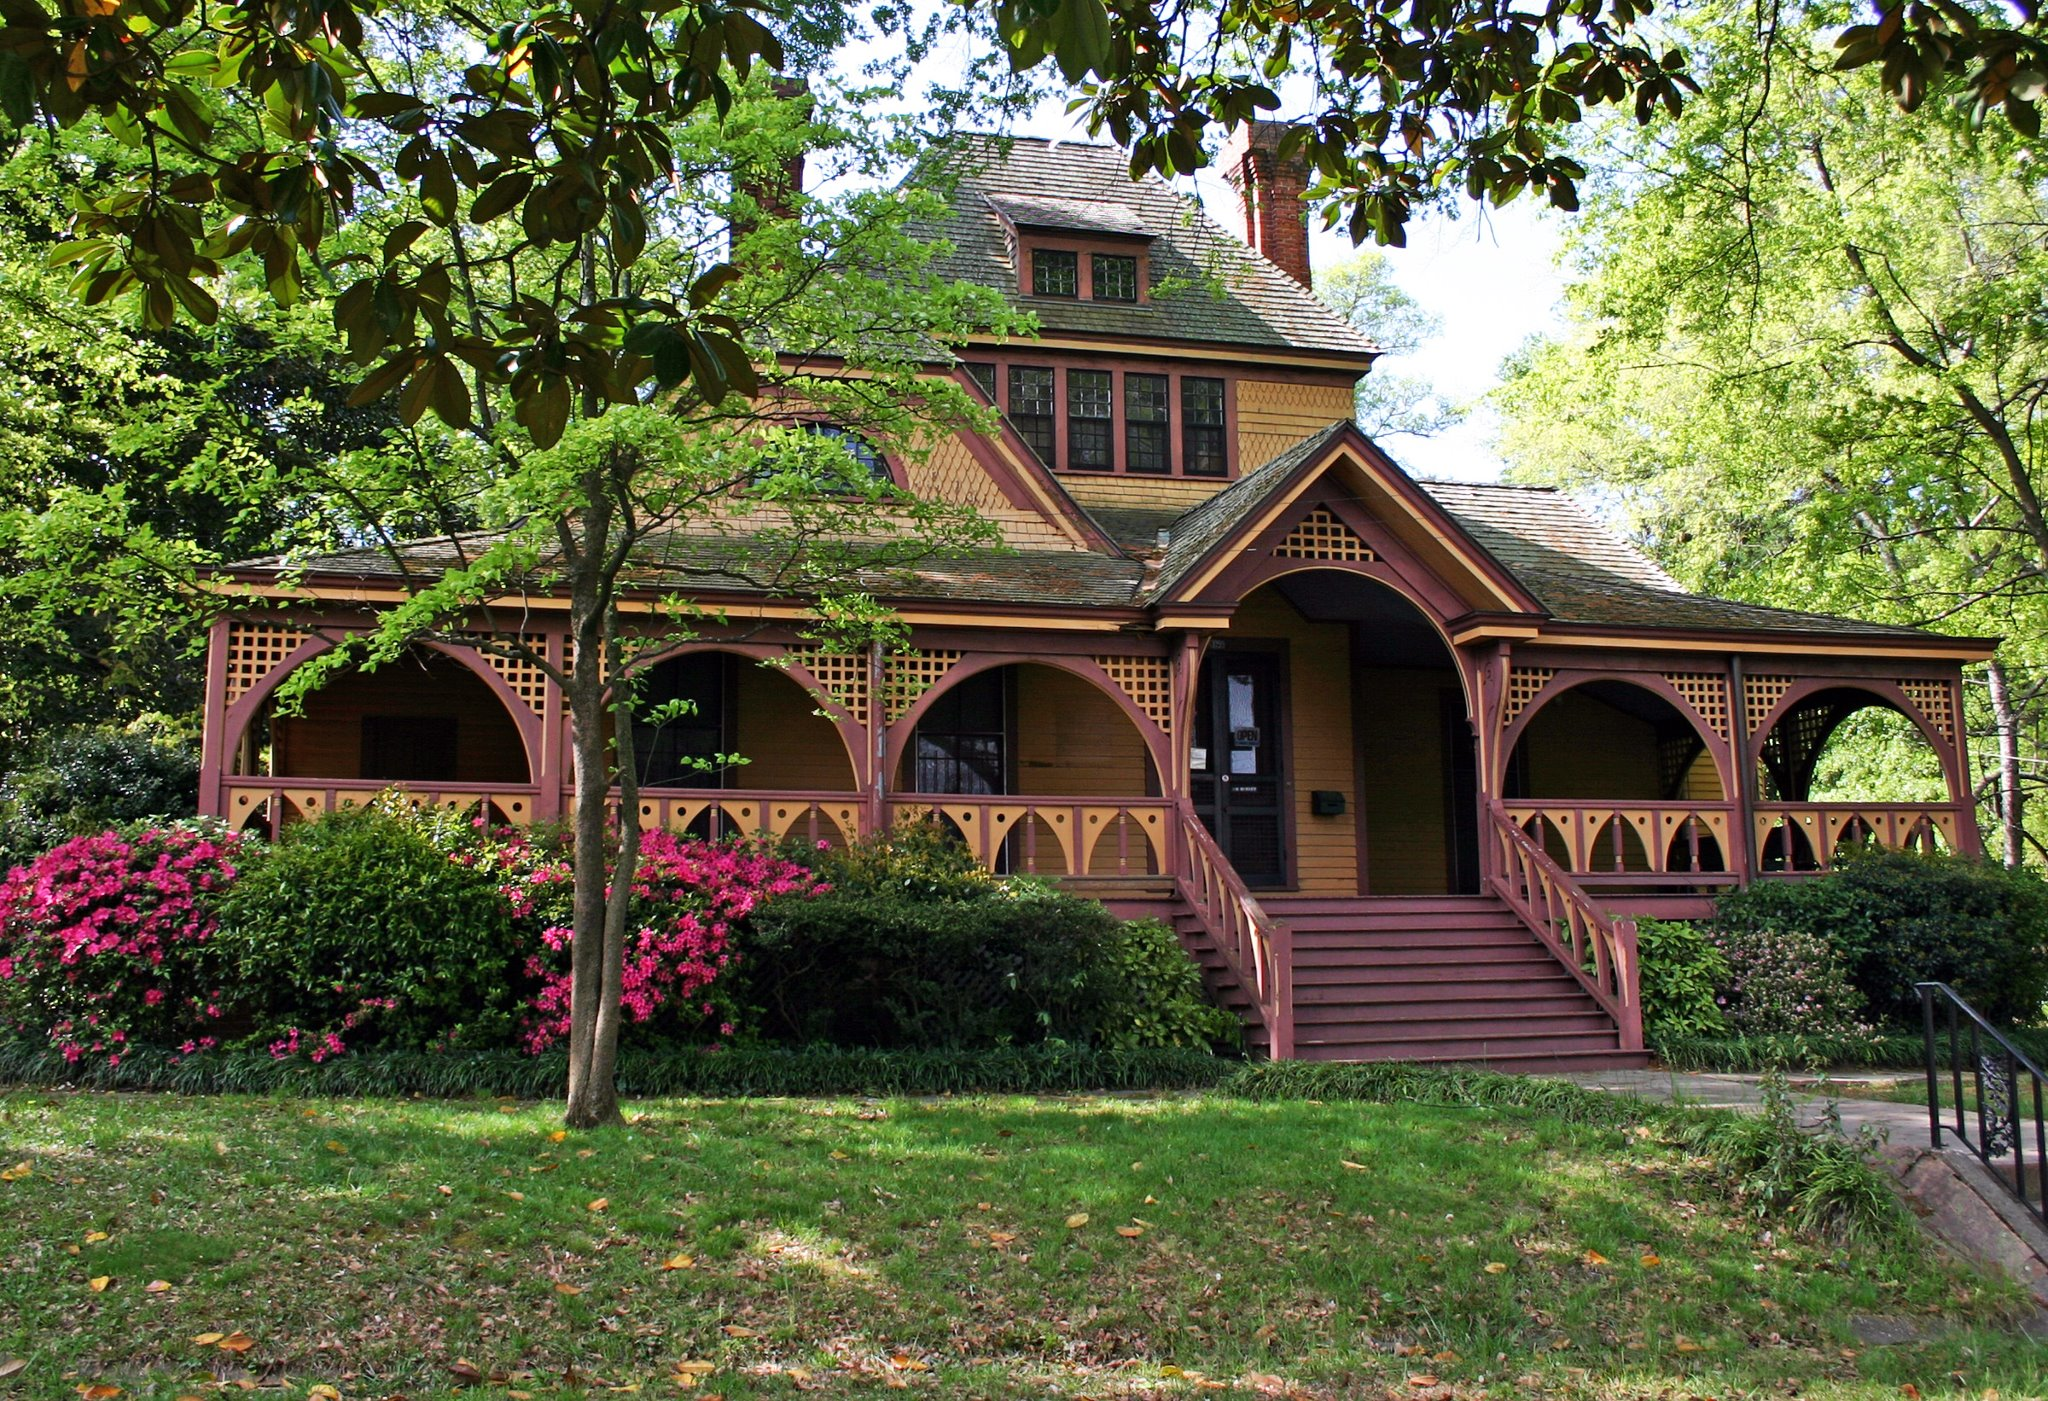 Located in Atlanta's historic West End, the Wren's Nest is Atlanta's oldest house museum. It was home of Joel Chandler Harris, recorder of the Br'er Rabbit stories.